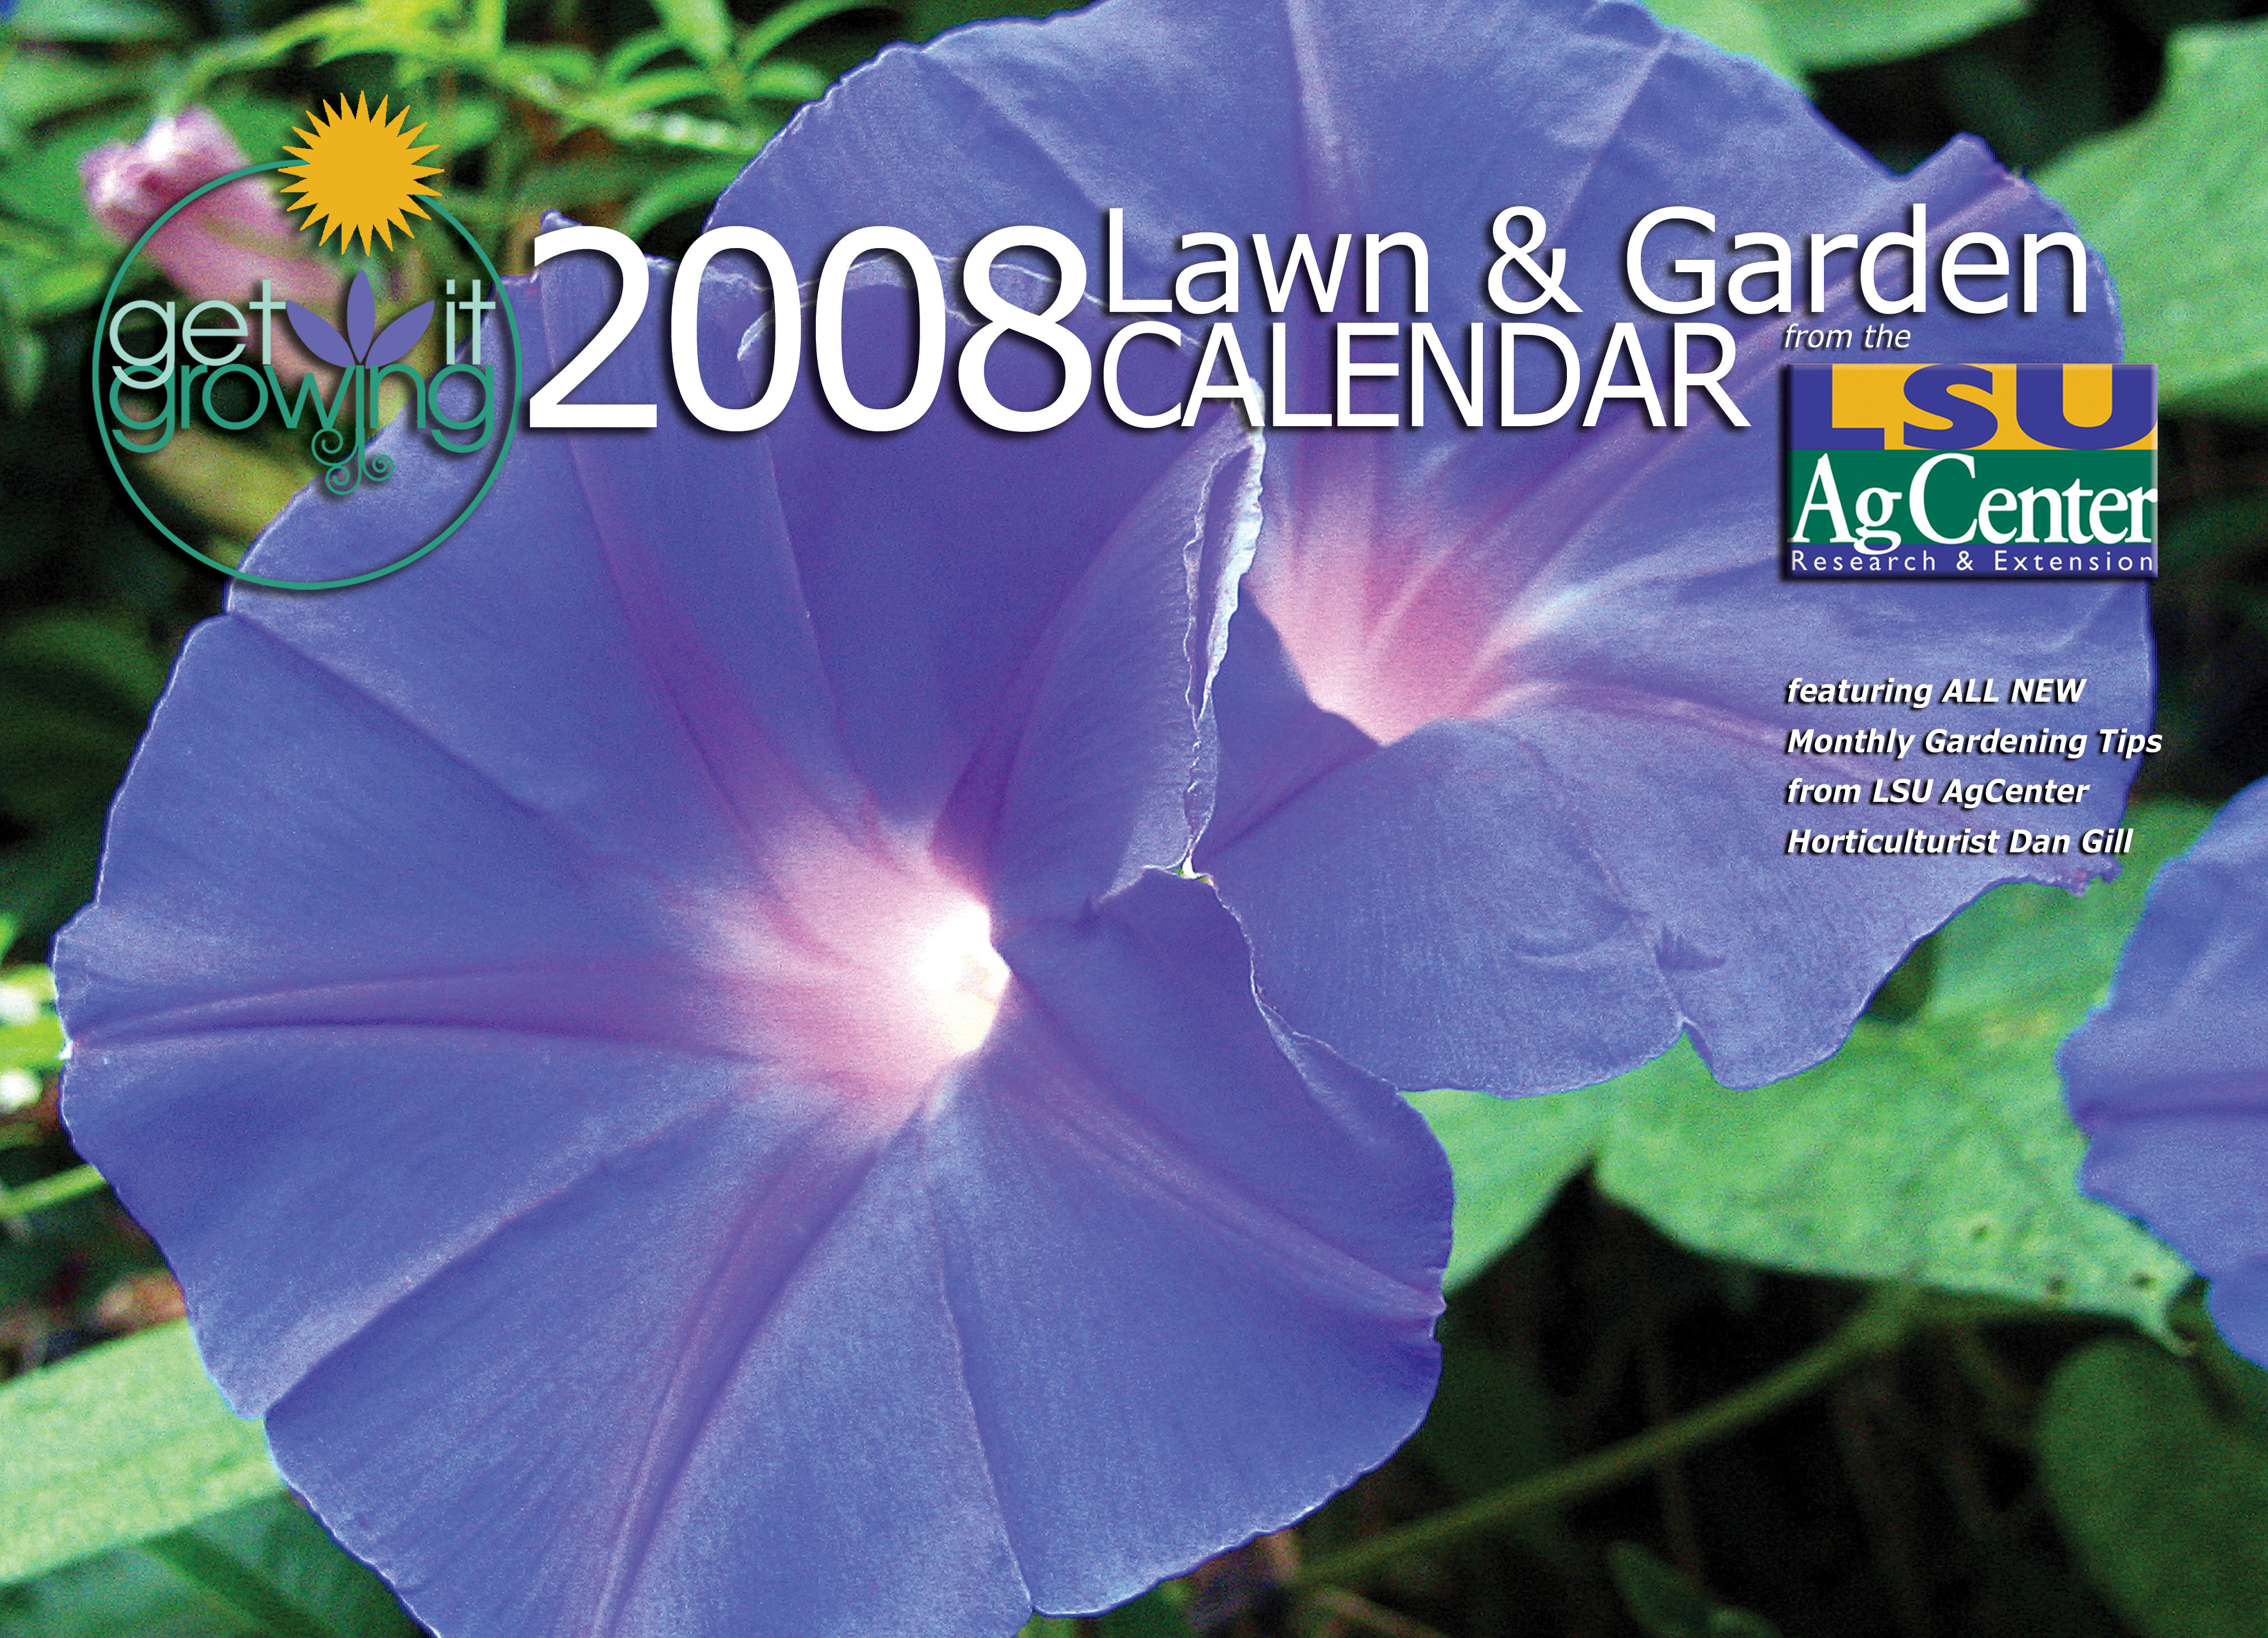 LSU AgCenter Publishes 2008 'Get It Growing' Calendar